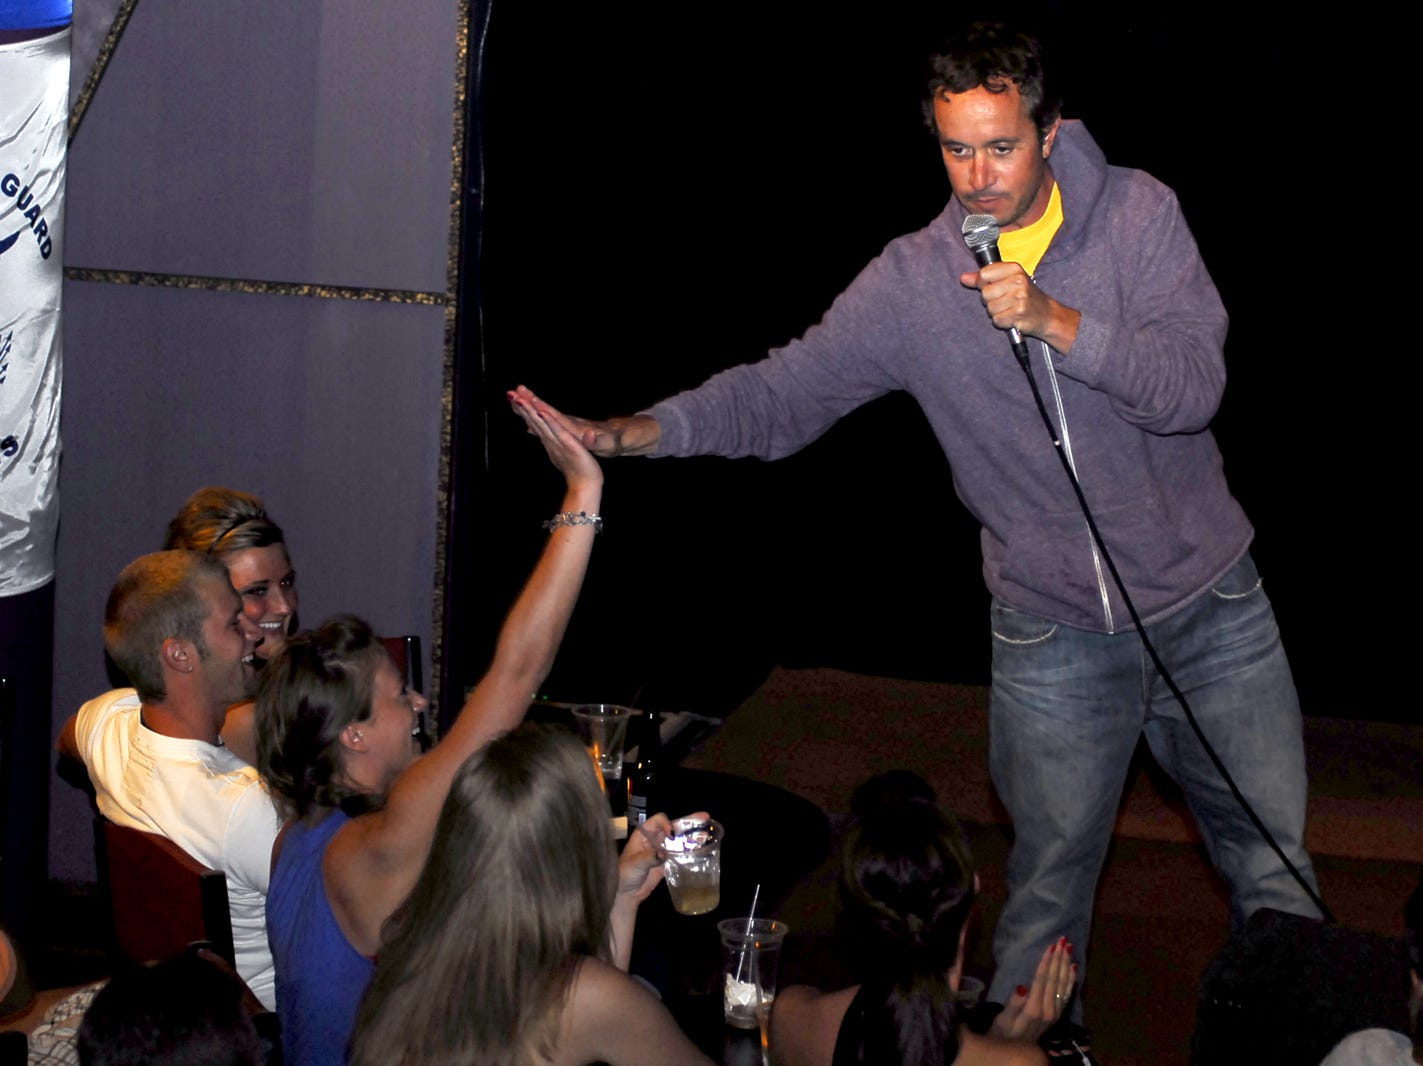 Comedian and actor Pauly Shore high fives a member of the audience during his 2008 performance at Gary Fields Comedy Club Theatre.